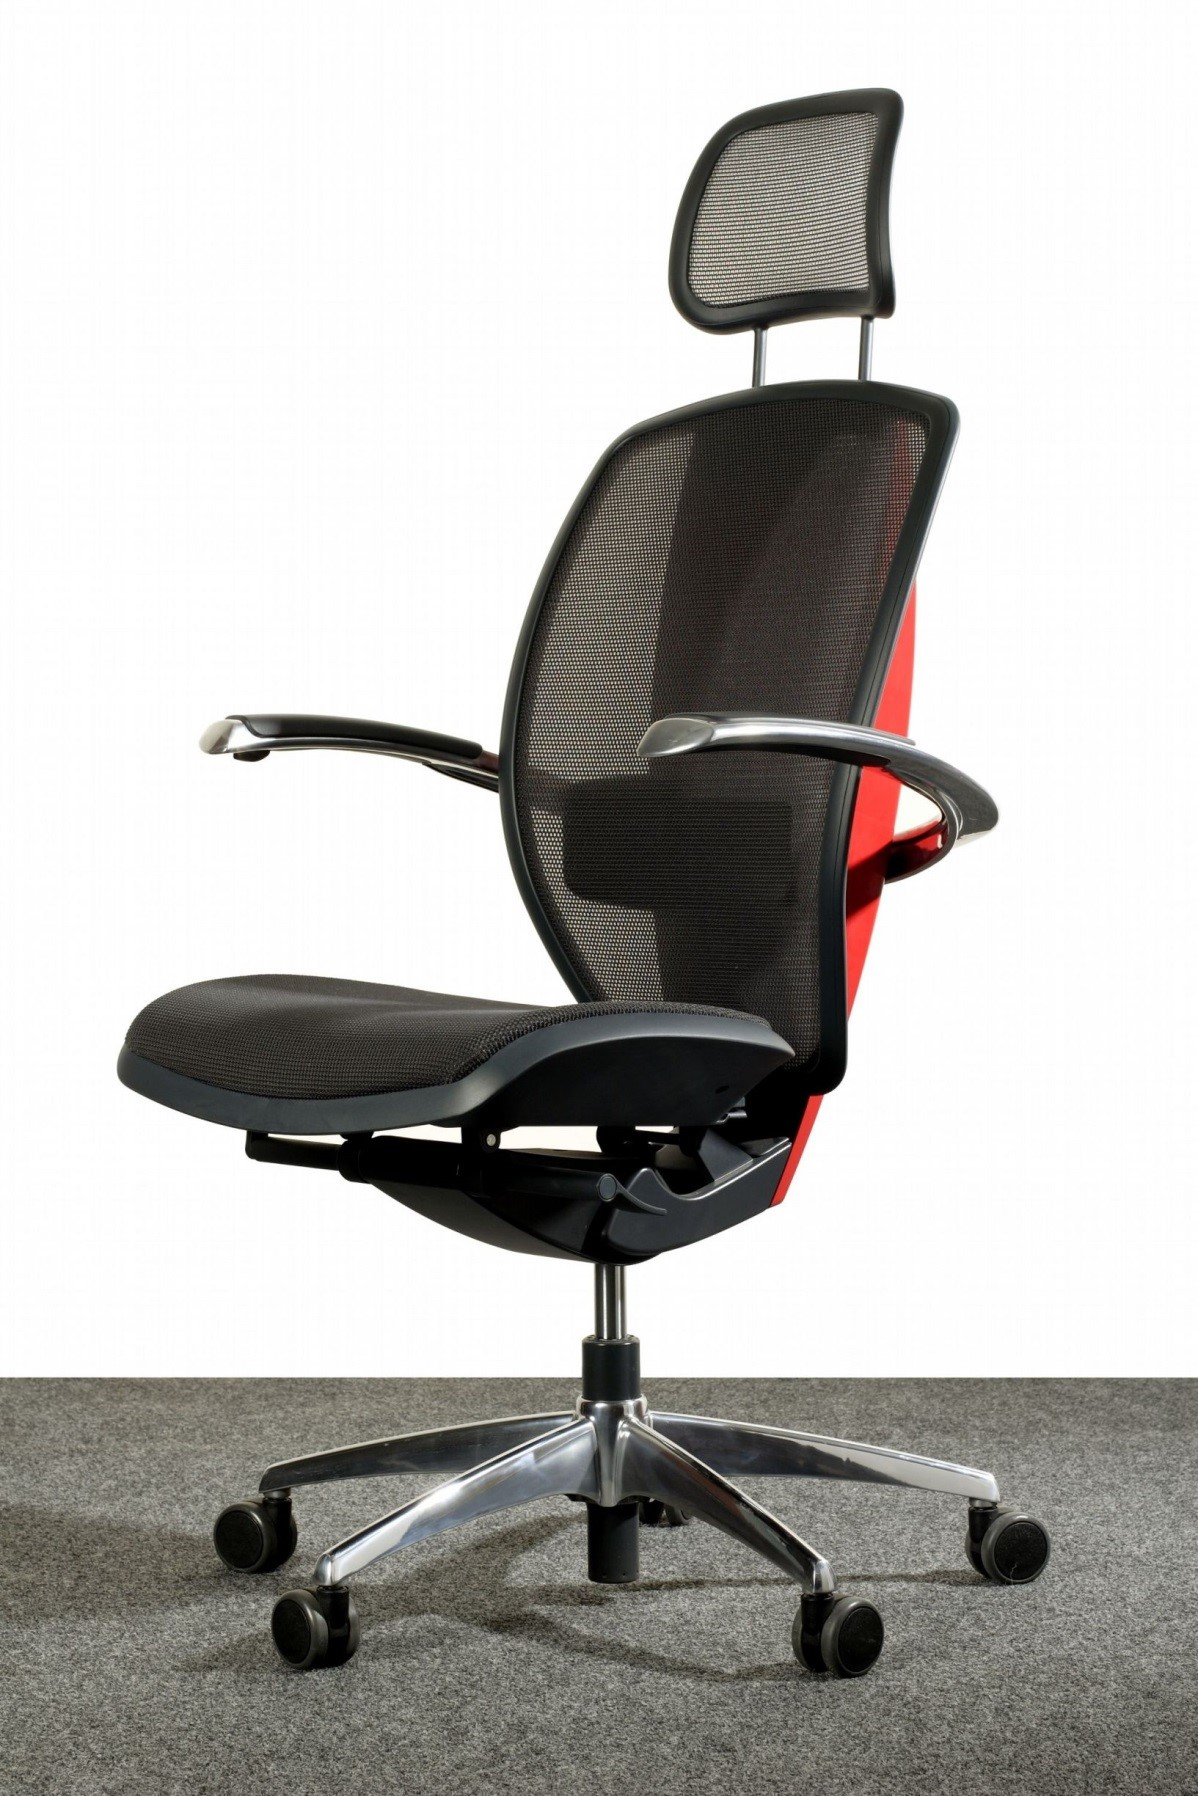 What to Look for and What to Avoid in an Ergonomic Task Chair